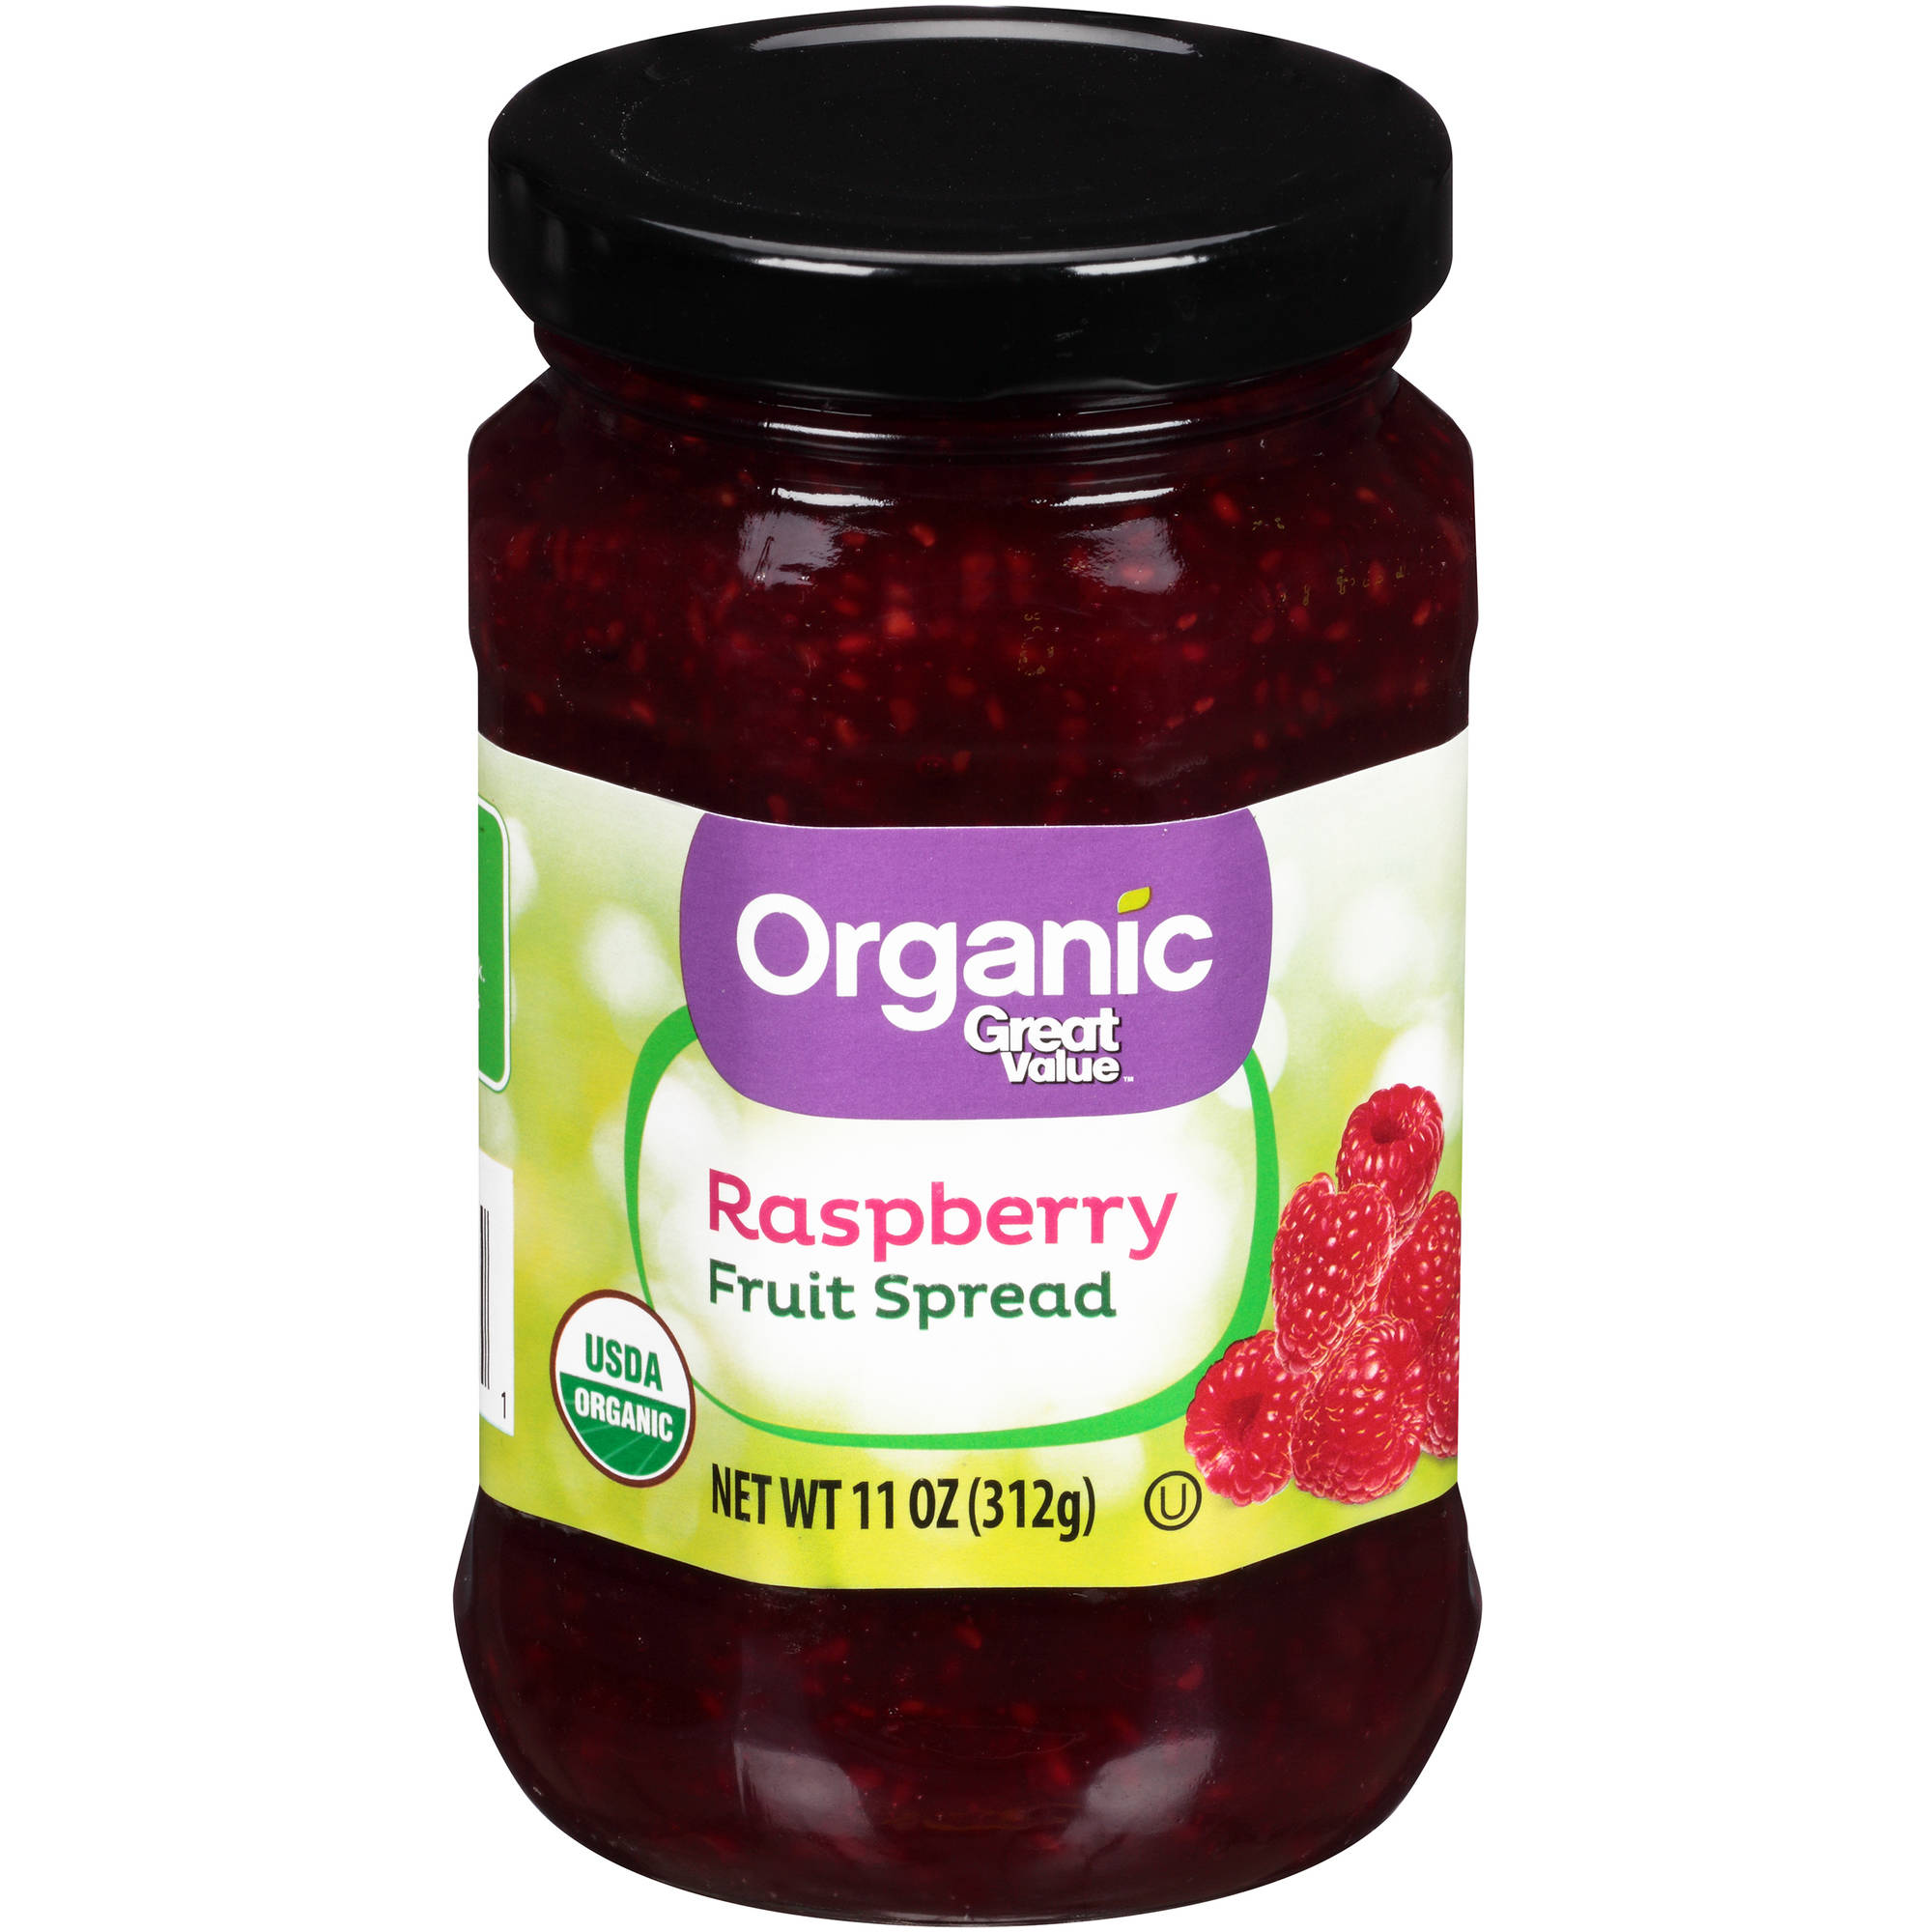 Great Value Organic Raspberry Fruit Spread